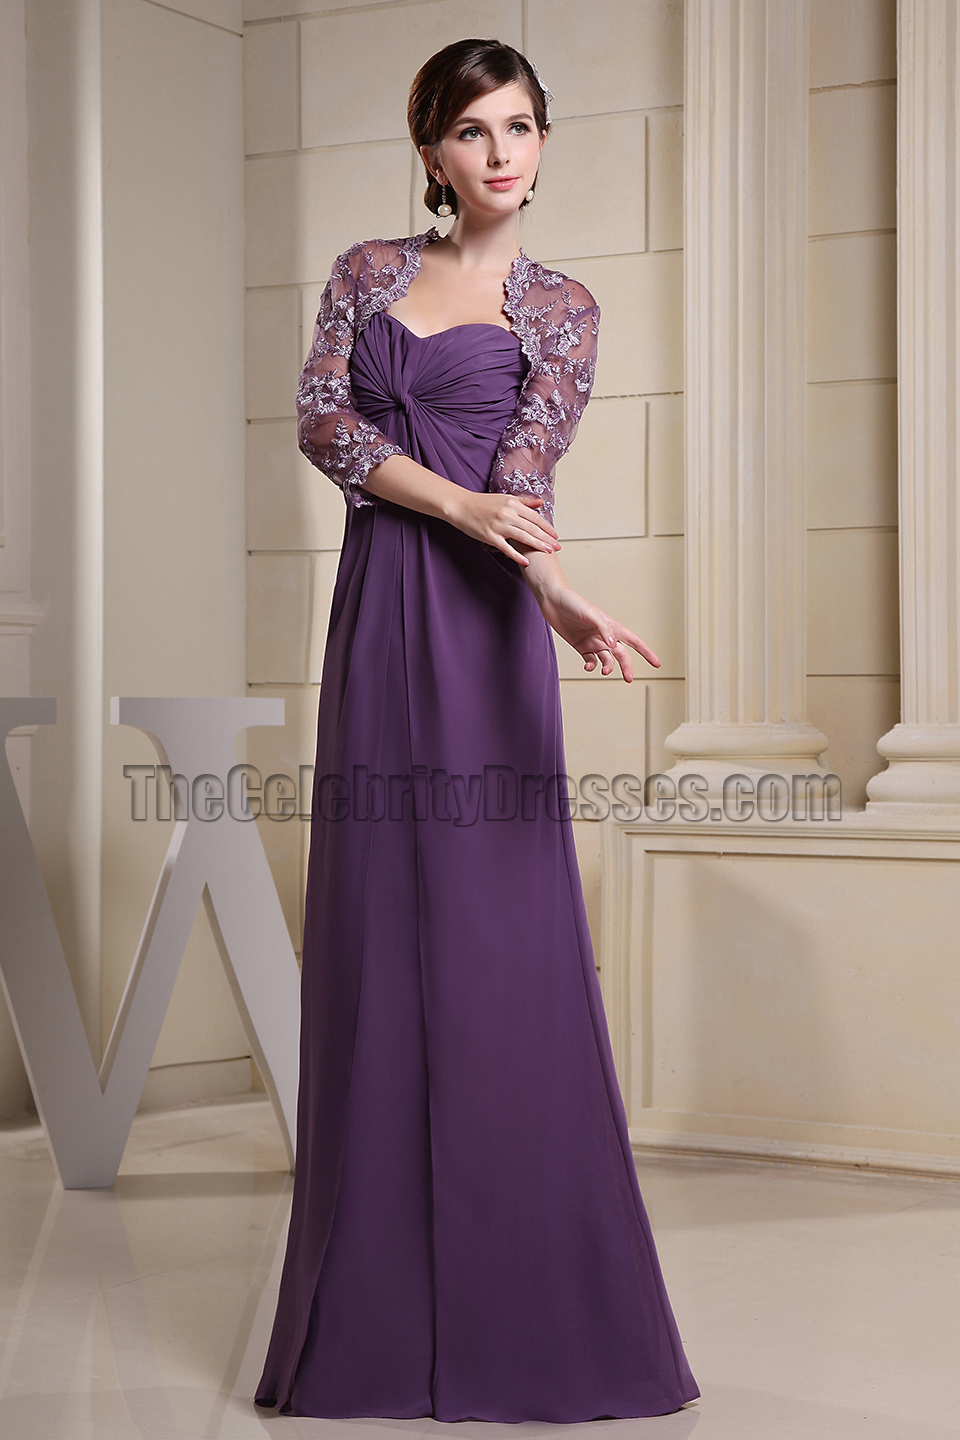 Simple Purple Chiffon Strapless Sweetheart Prom Dress Formal Gown ...